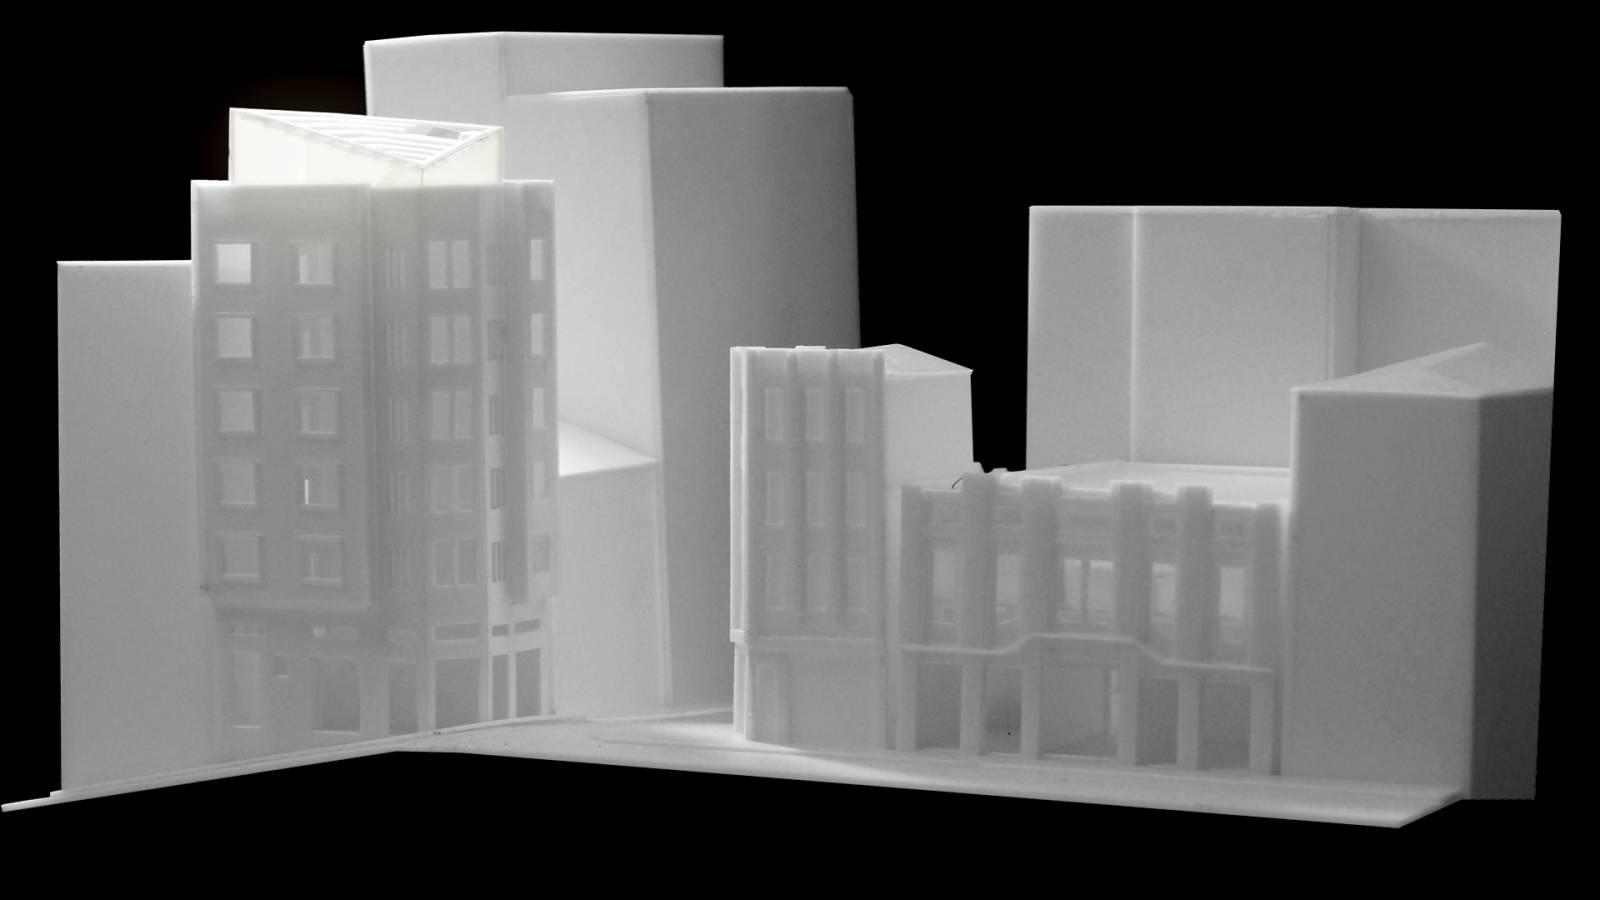 MODEL STUDY - Edifício Barreiro - SPOL Architects